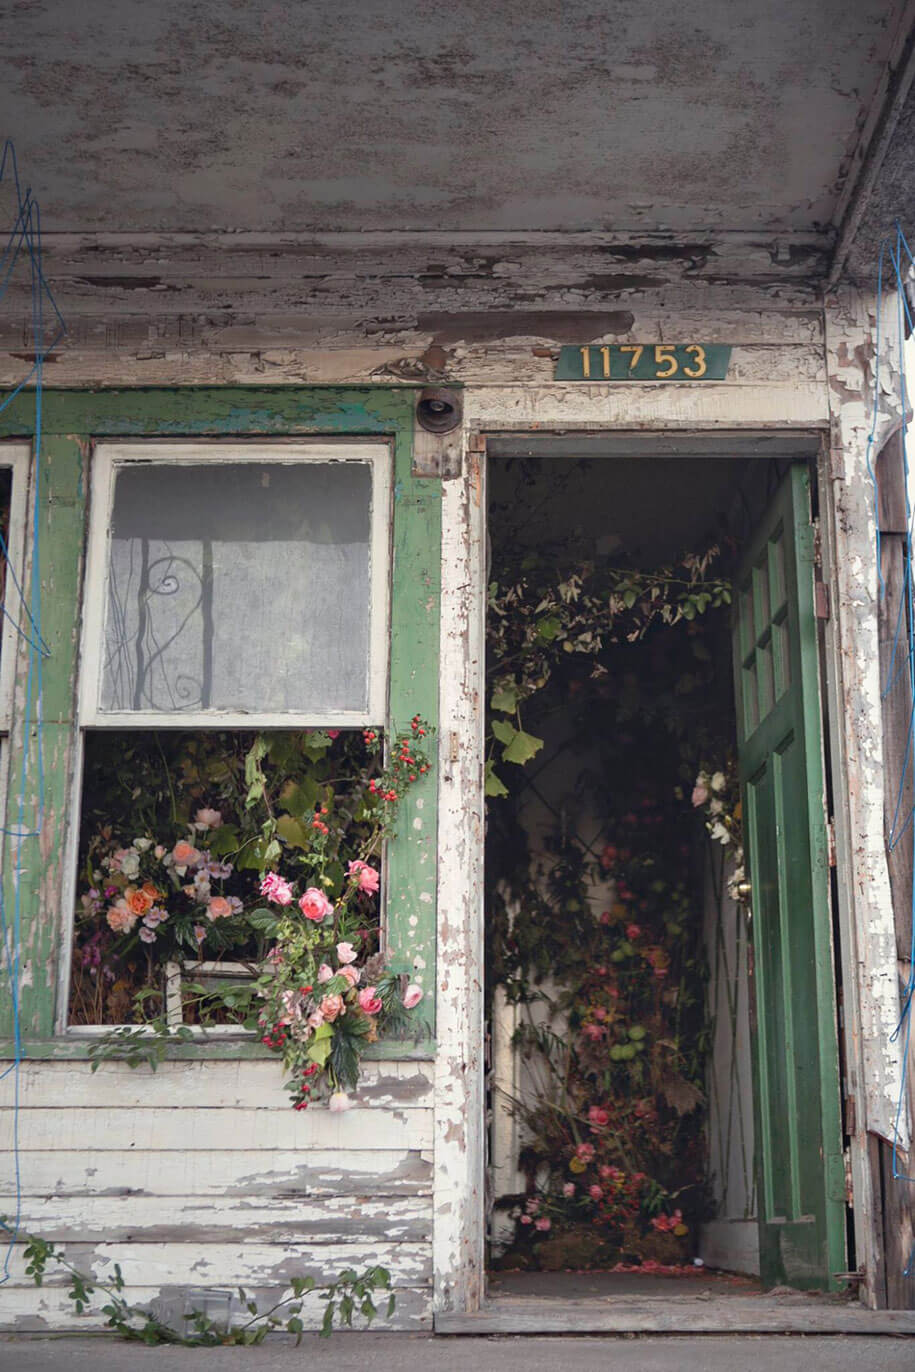 abandoned-house-transformed-flower-house-lisa-waud-heather-saunders-31